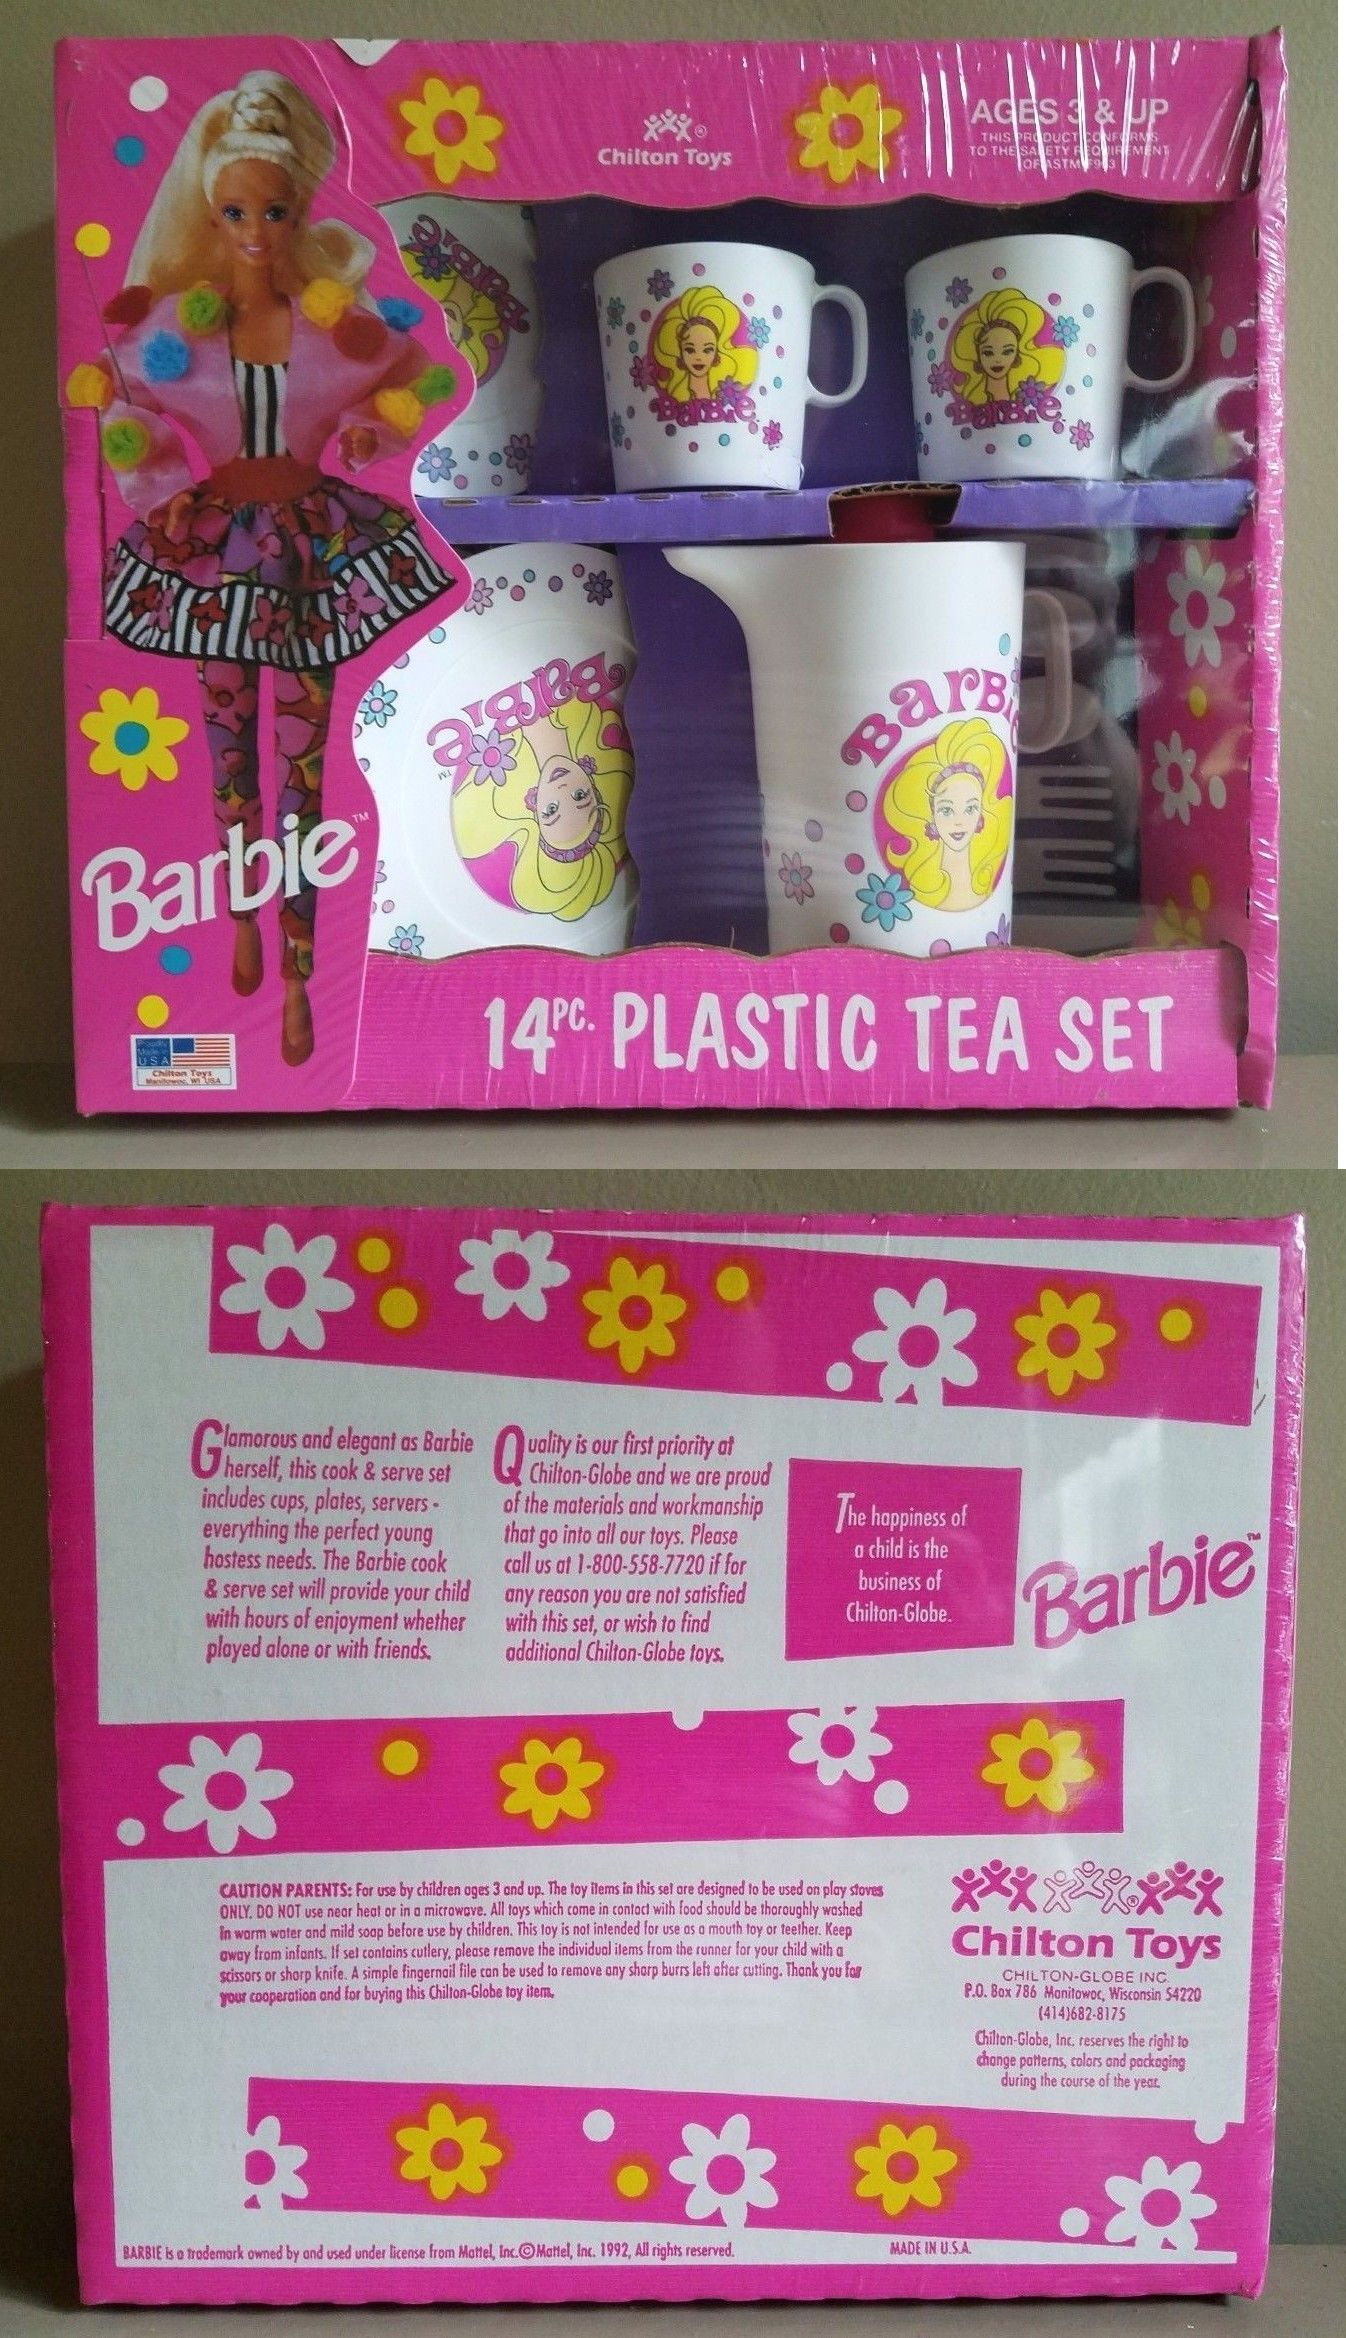 Dishes Tea Sets 19171 New Barbie 14 Piece Plastic Childrens Tea Set Buy It Now Only 14 99 On Ebay Dishes Ba Childrens Tea Sets Tea Set Plastic Tea Set